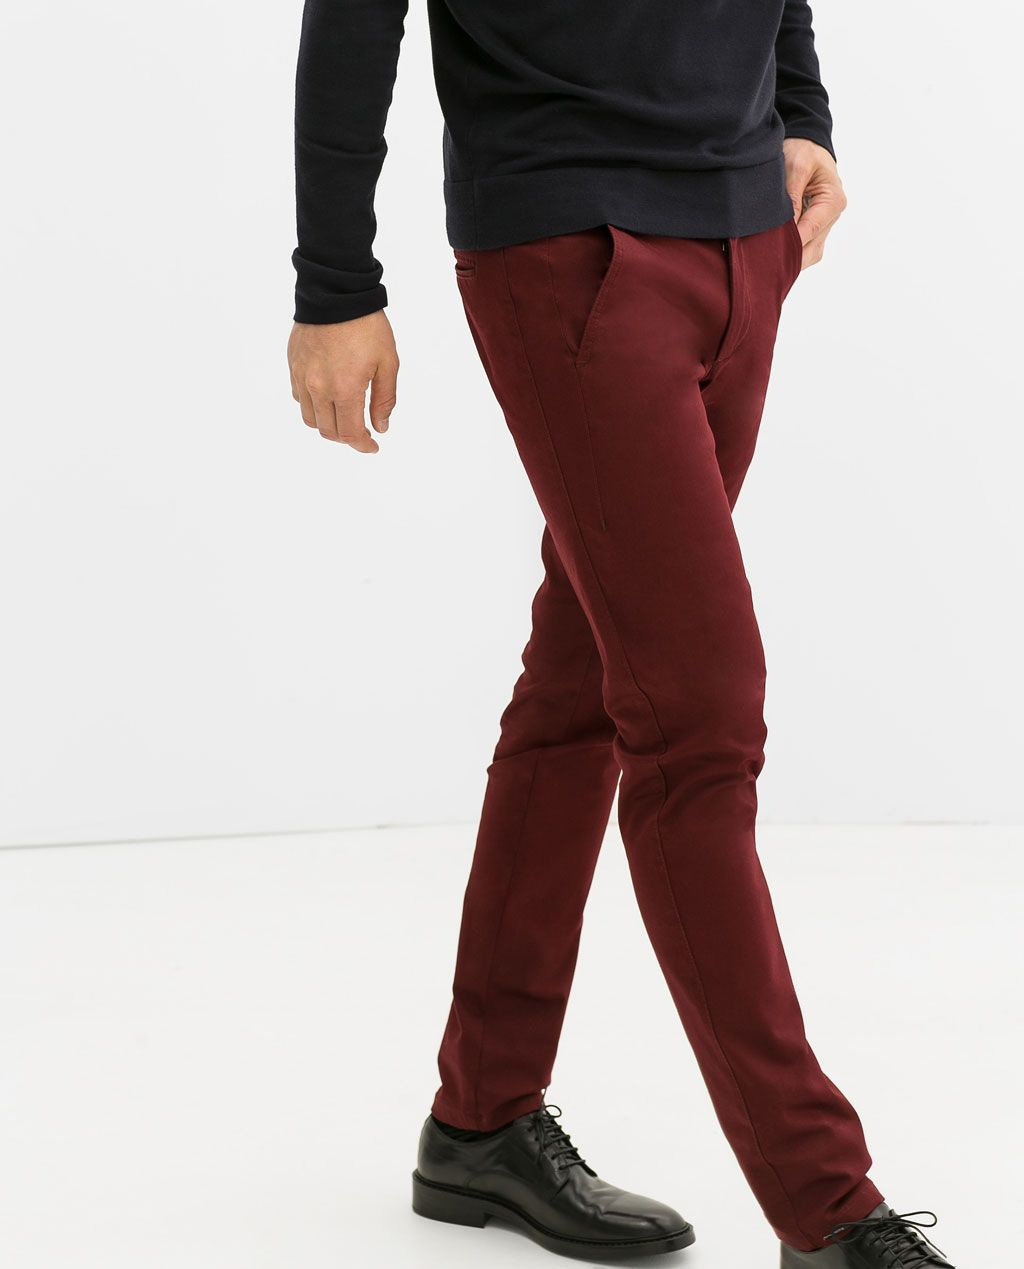 ce88eff2 ZARA - MAN - BASIC CHINO TROUSERS Burgundy Chinos, Zara Man, Men's Wardrobe,